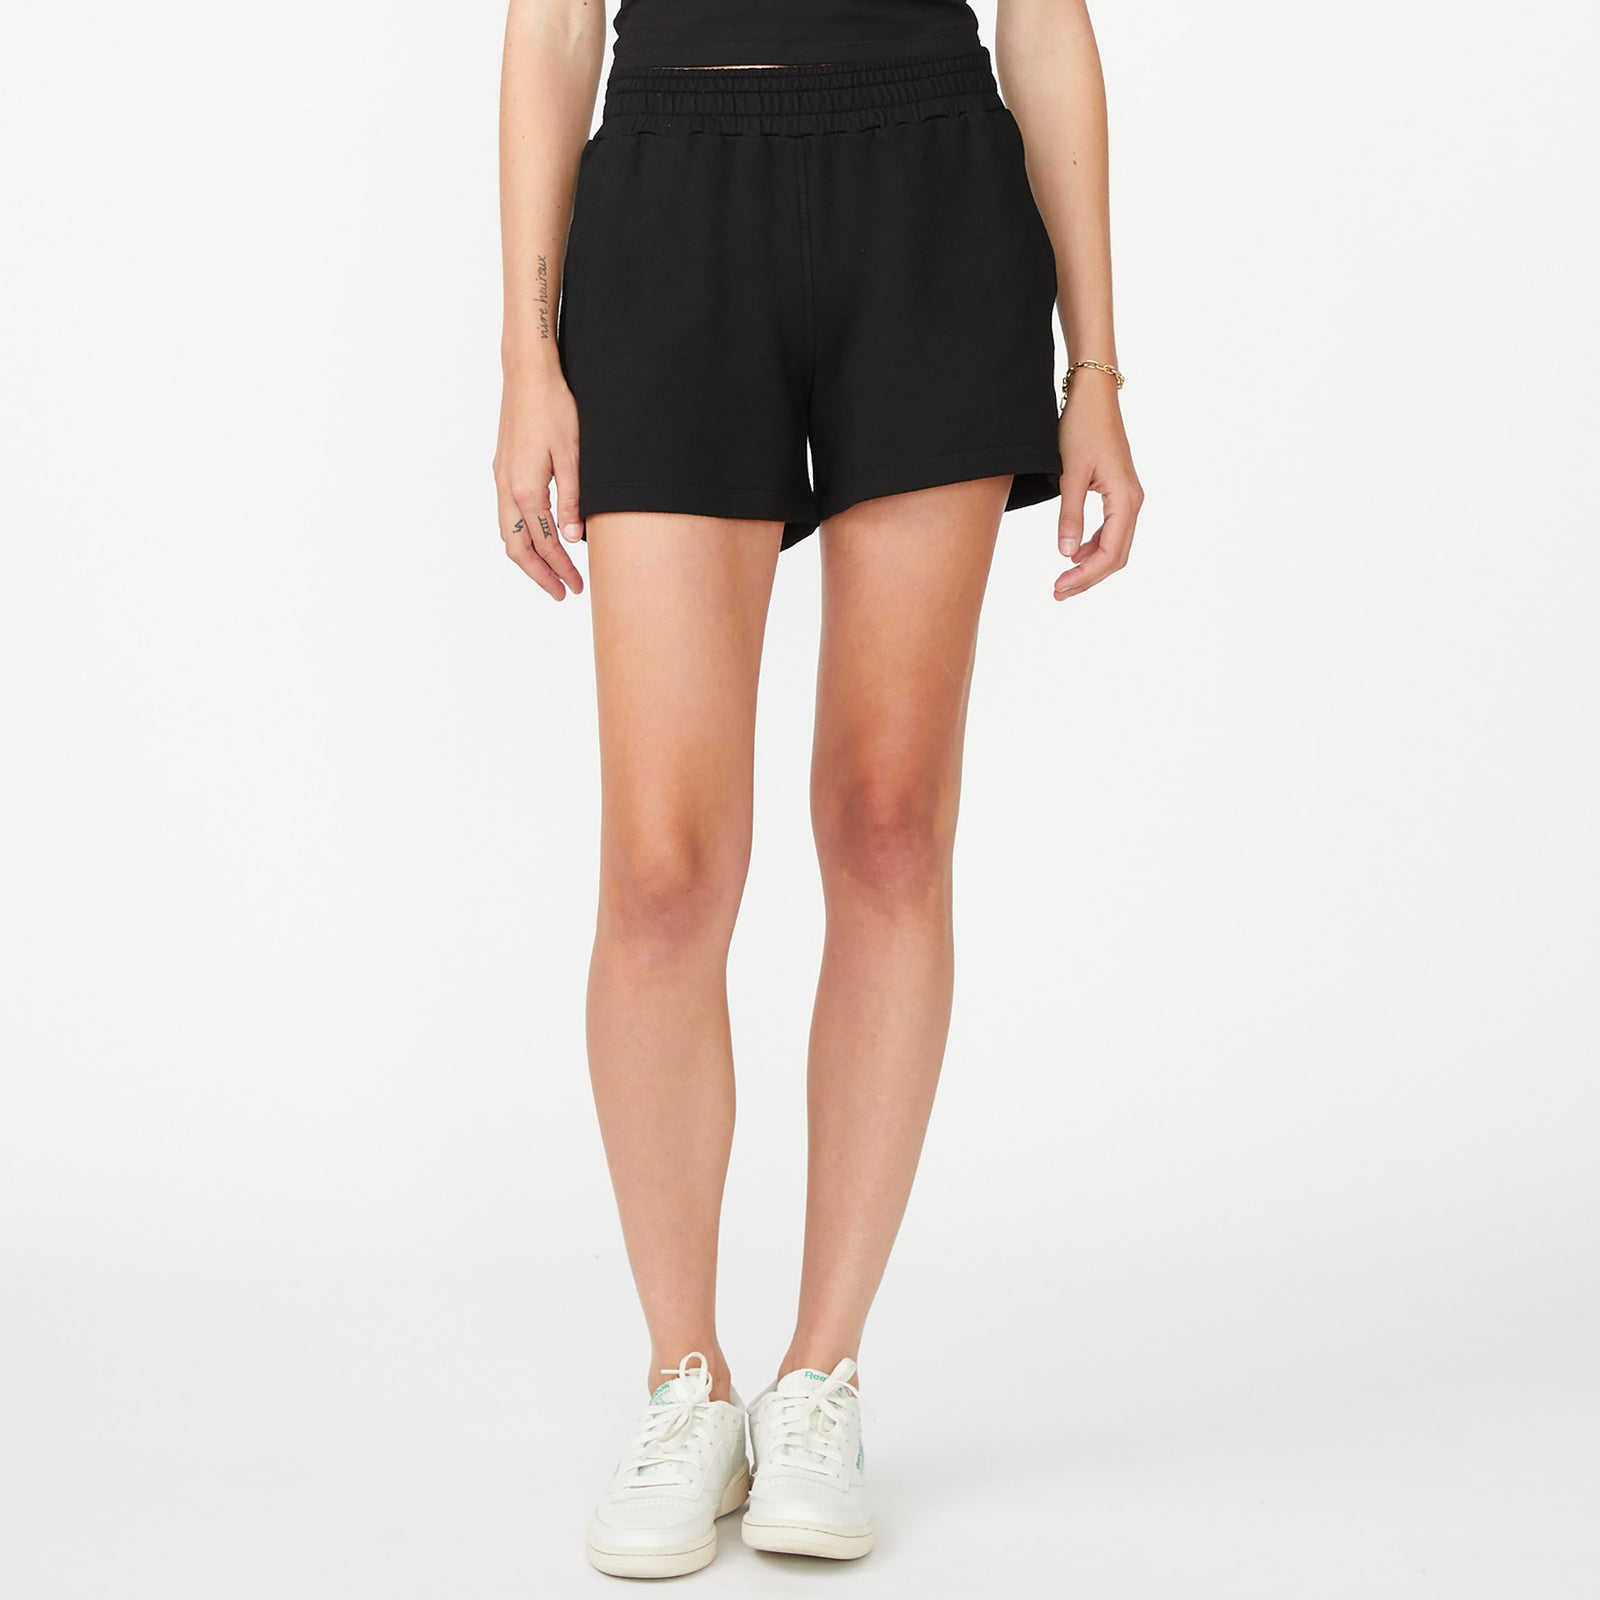 Ex-Boyfriend Shorts (4890726465638)